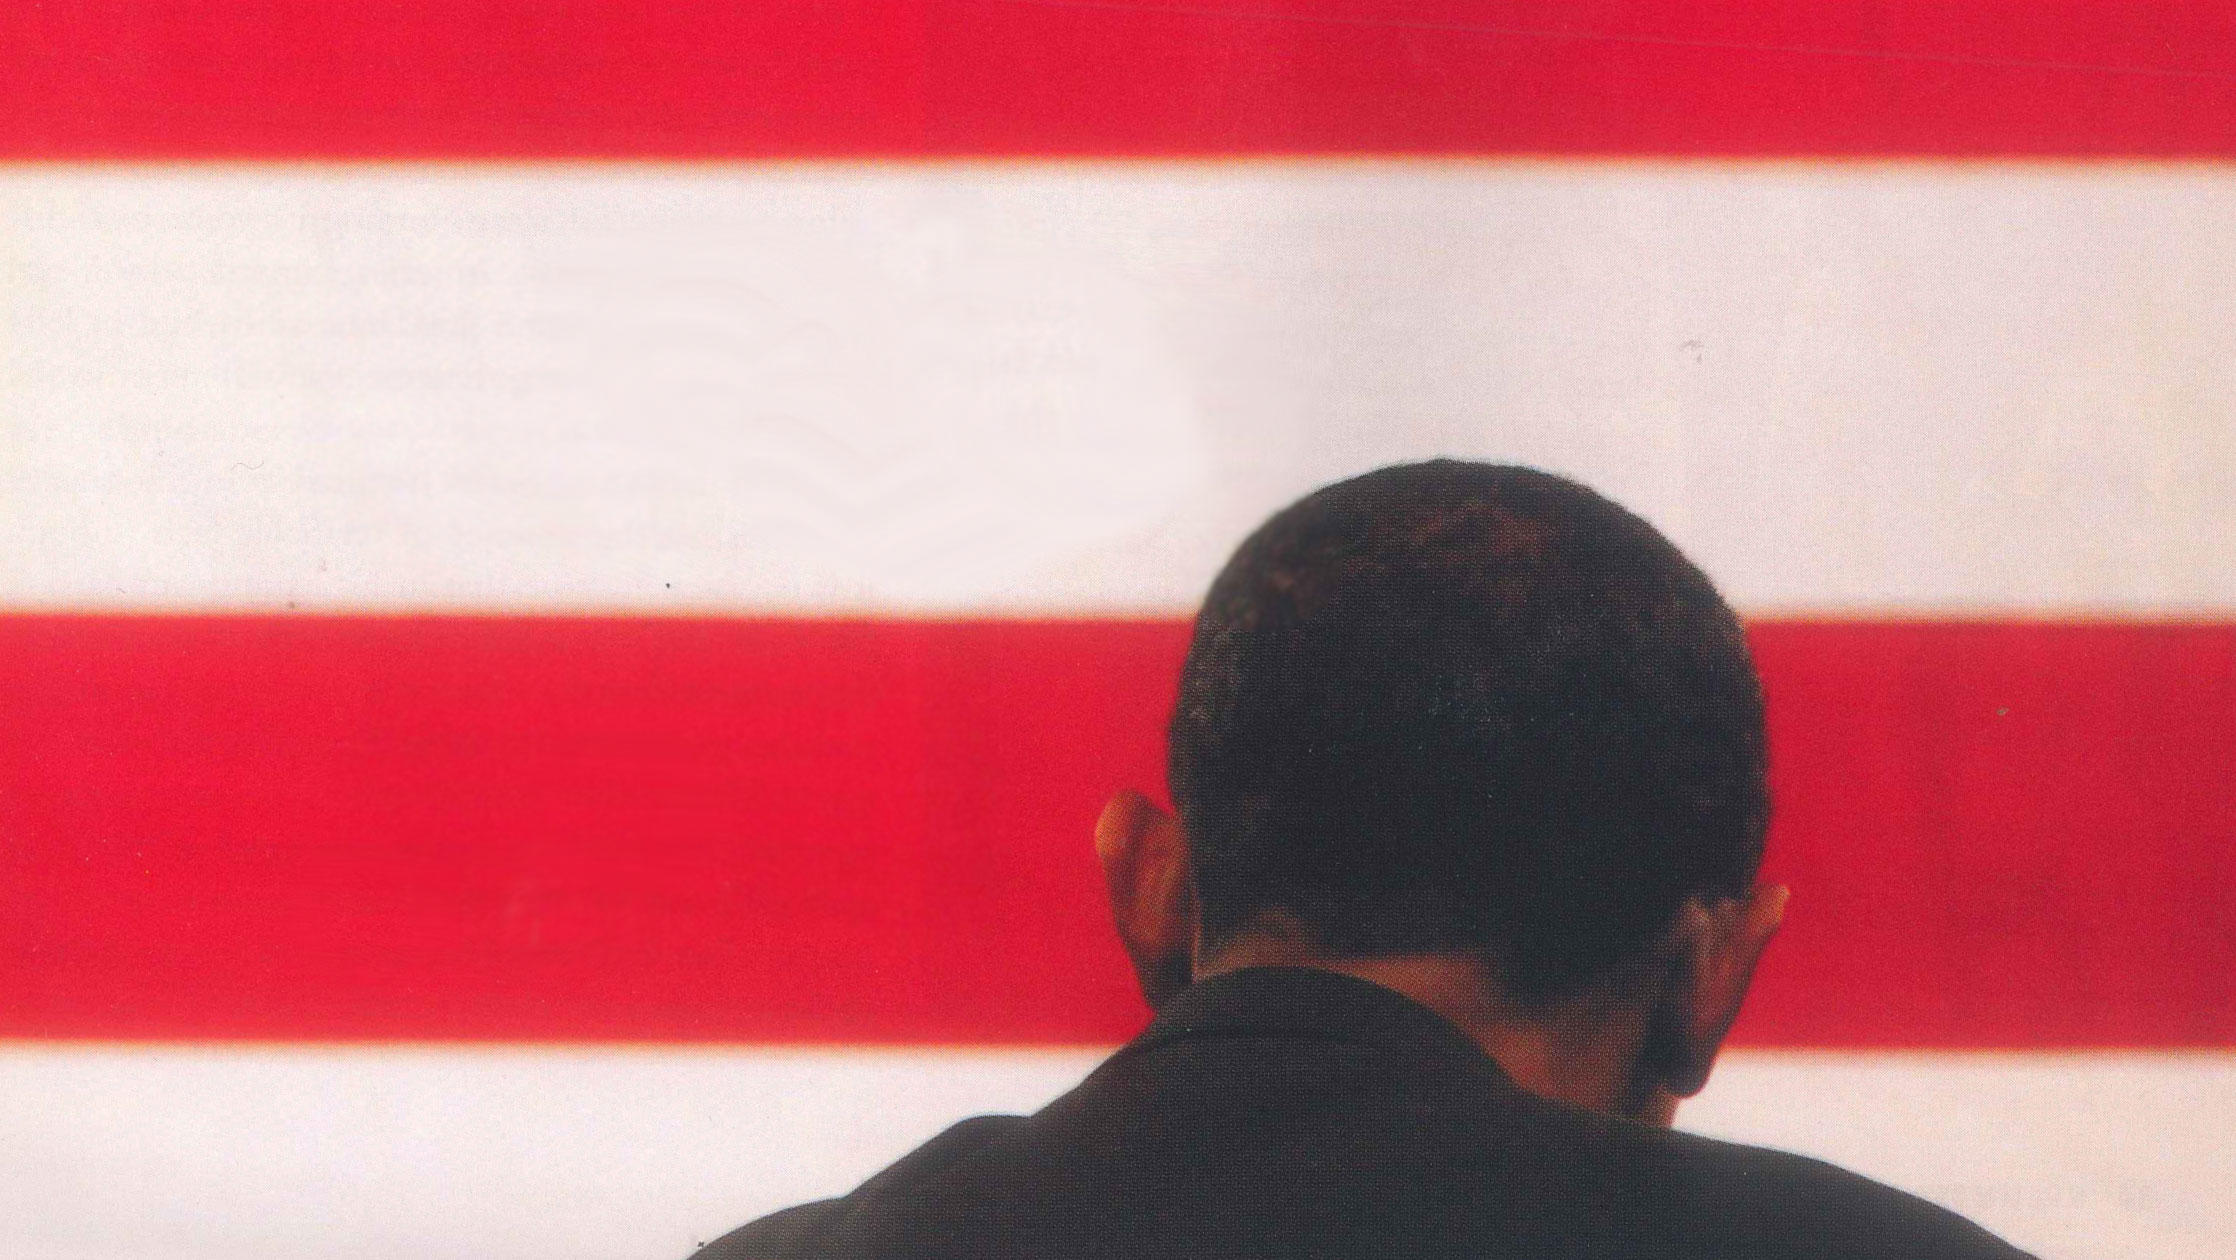 Photograph of the back of Barack Obama's head over American flag stripes